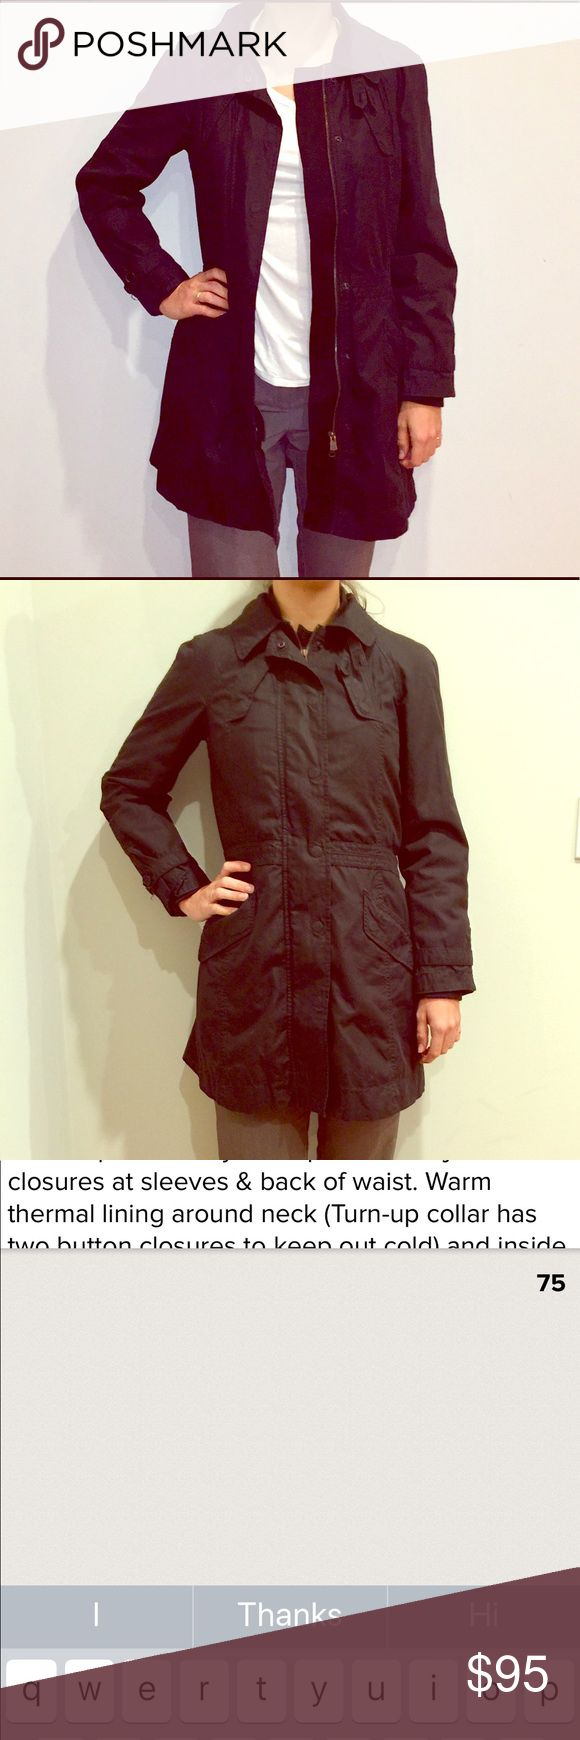 """Armani Exchange Utility Jacket Armani Exchange Utility Jacket features Trendy Chic yet Classy & Classic Style. Detachable fleece lining for warmth in chilly weather. Snaps and zips in front. Two breast pockets snap closed & two extra Roomy hand pockets. Adjustable waist belt in back. Adjustable button closures let you wear collar up or down. Model is 5'9"""" tall for reference. Roomy enough to wear with thick sweater (Shown) or with a lighter (Shown) Perfect Multi Season Jacket. Armani Exchange…"""